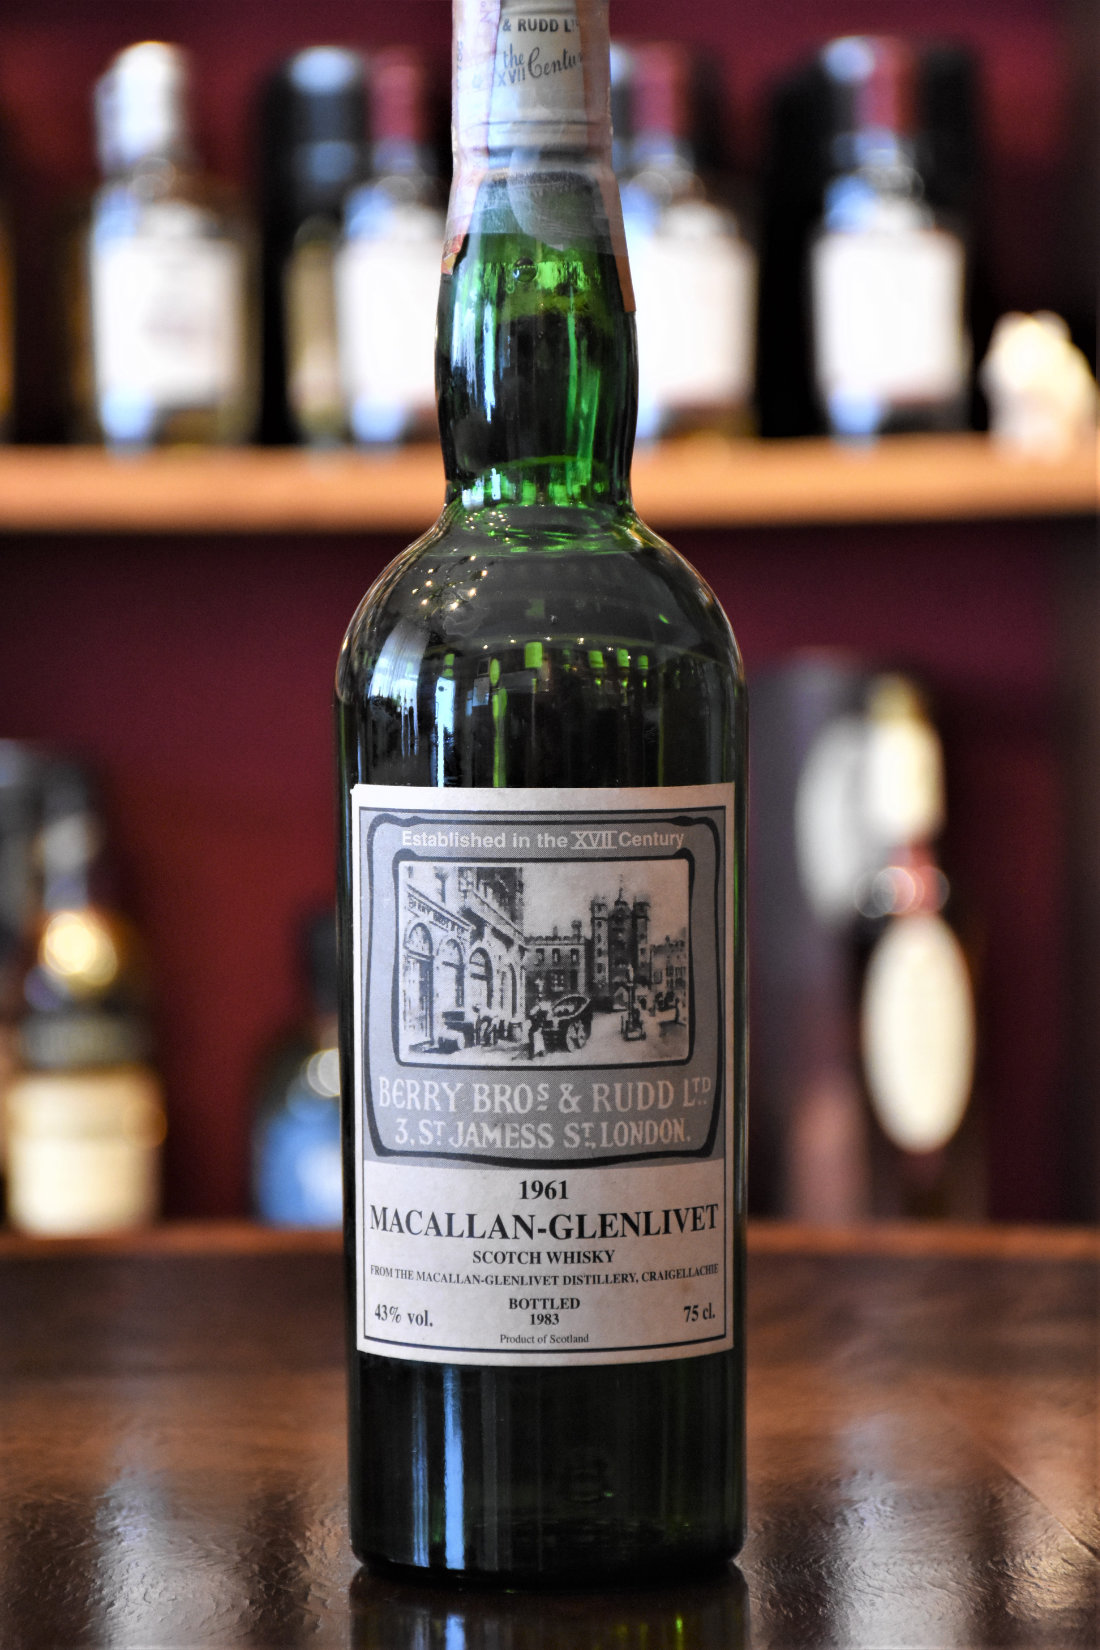 Macallan 1961 Old Bond Street Label Absolute Rarität! 43% Alc.Vol., Berry Bros. & Rudd